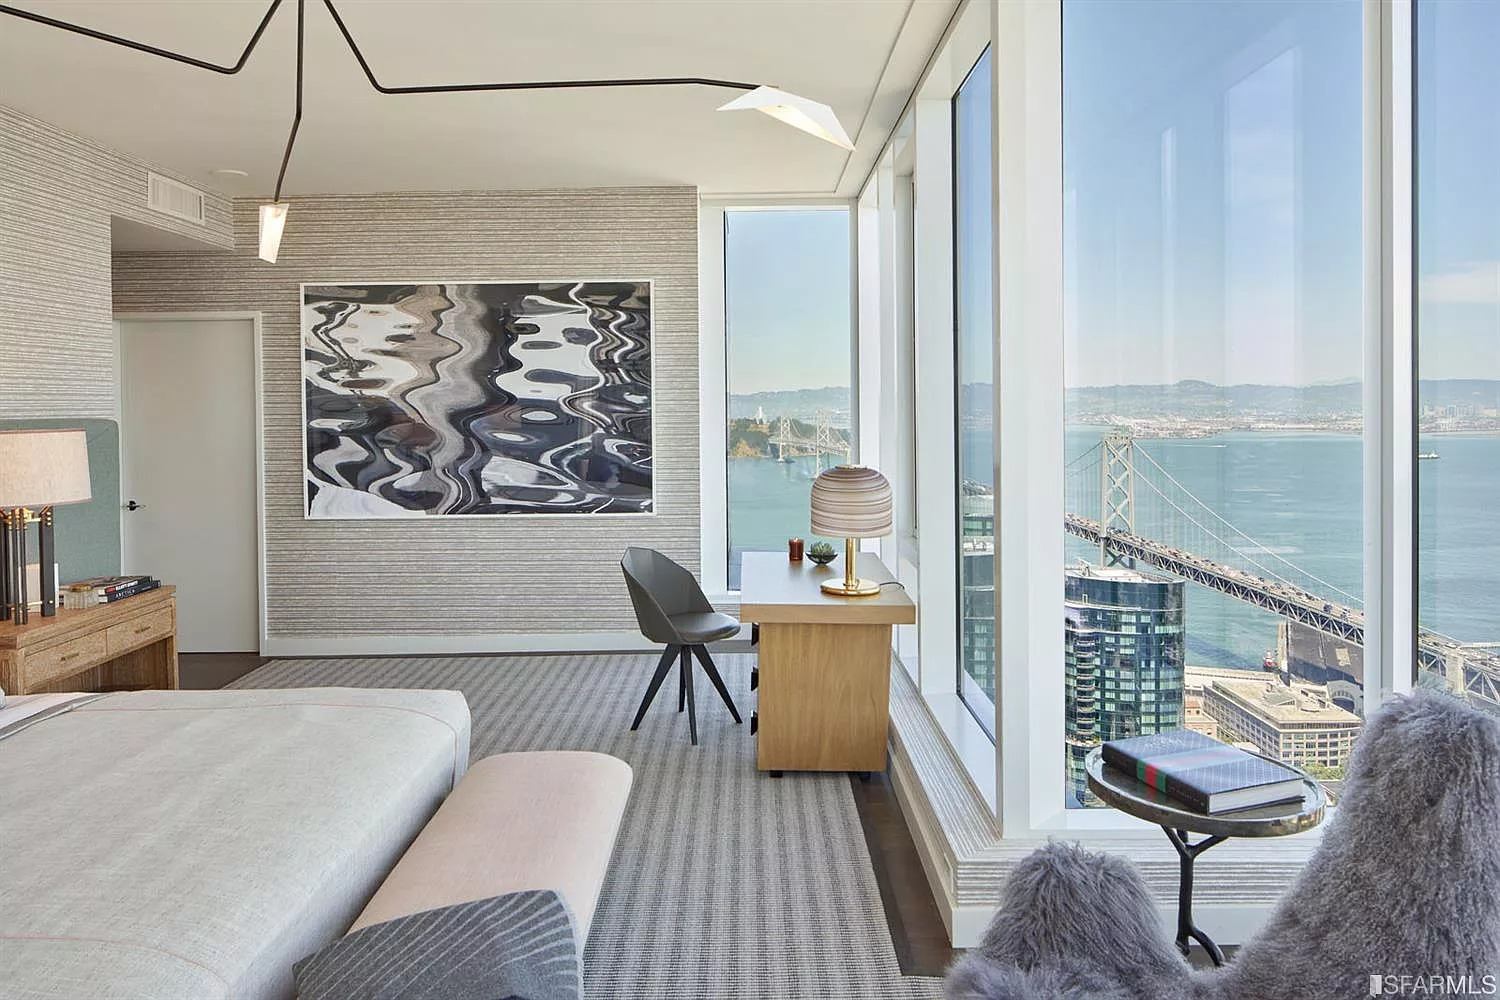 488 Folsom St # 5301, San Francisco, CA 94105 - $15,950,000 home for sale, house images, photos and pics gallery